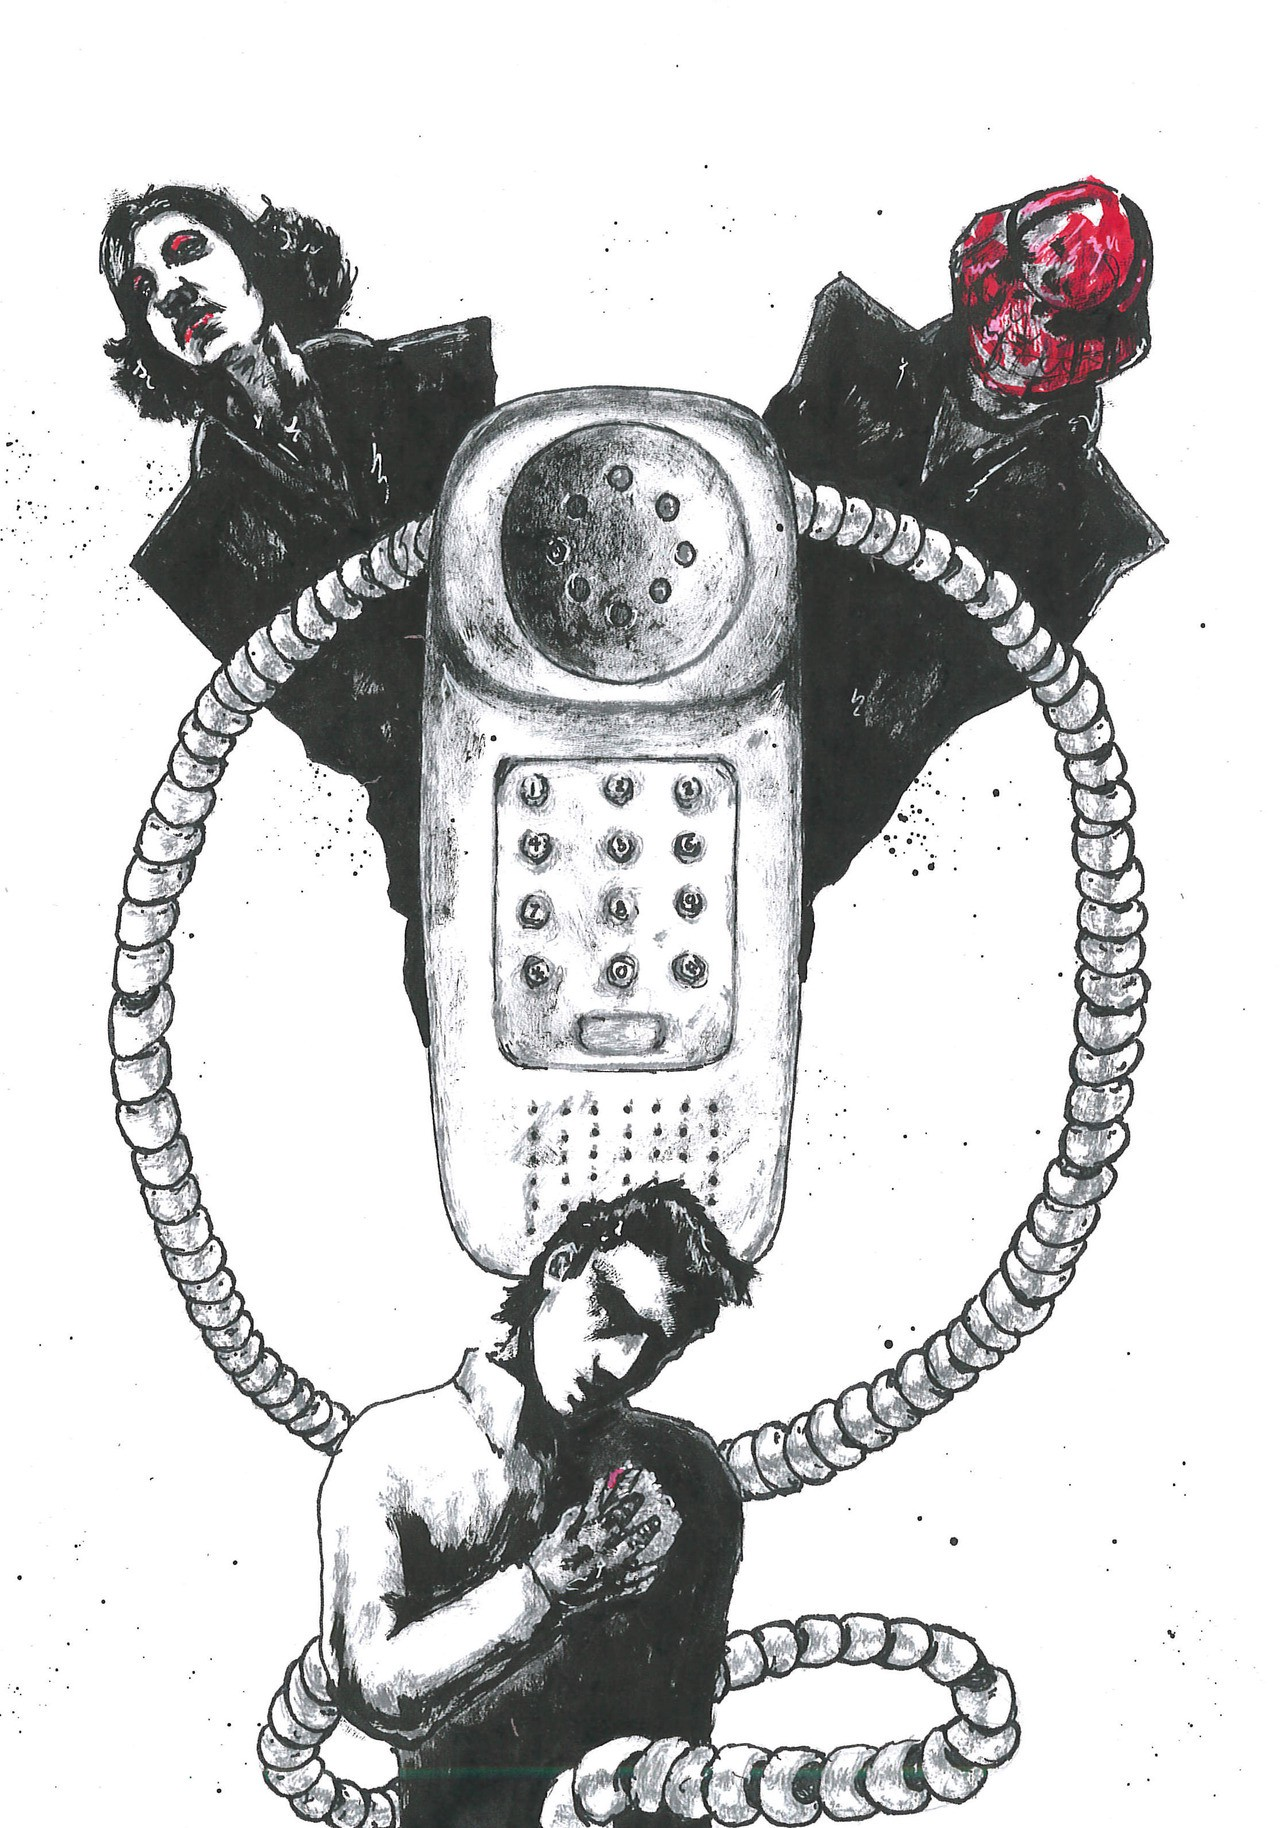 Two women on phone call with man